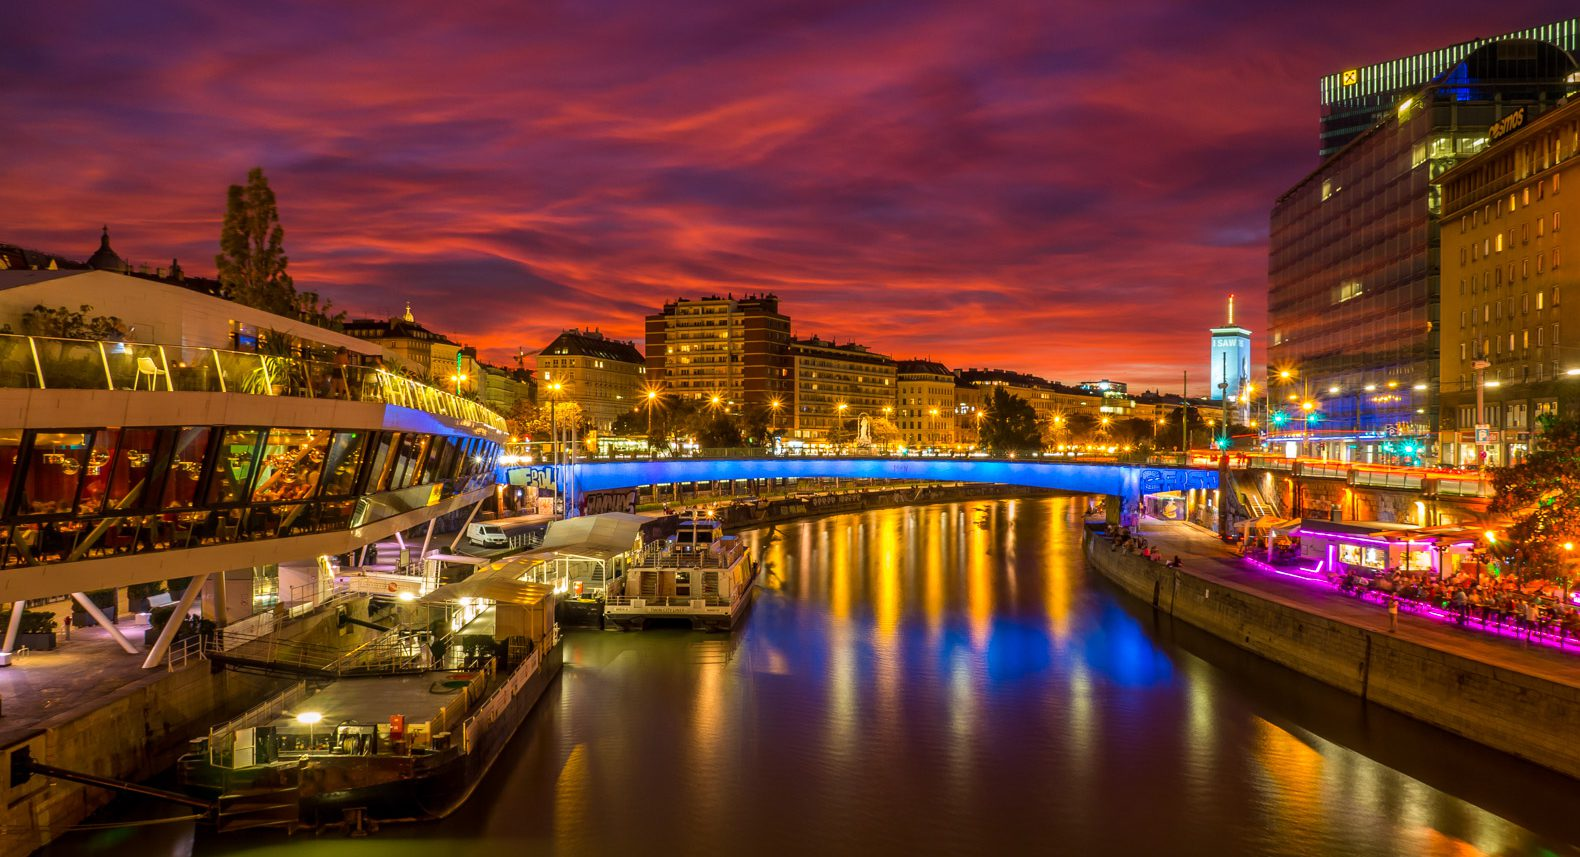 Evening view of the Danube Canal in Vienna